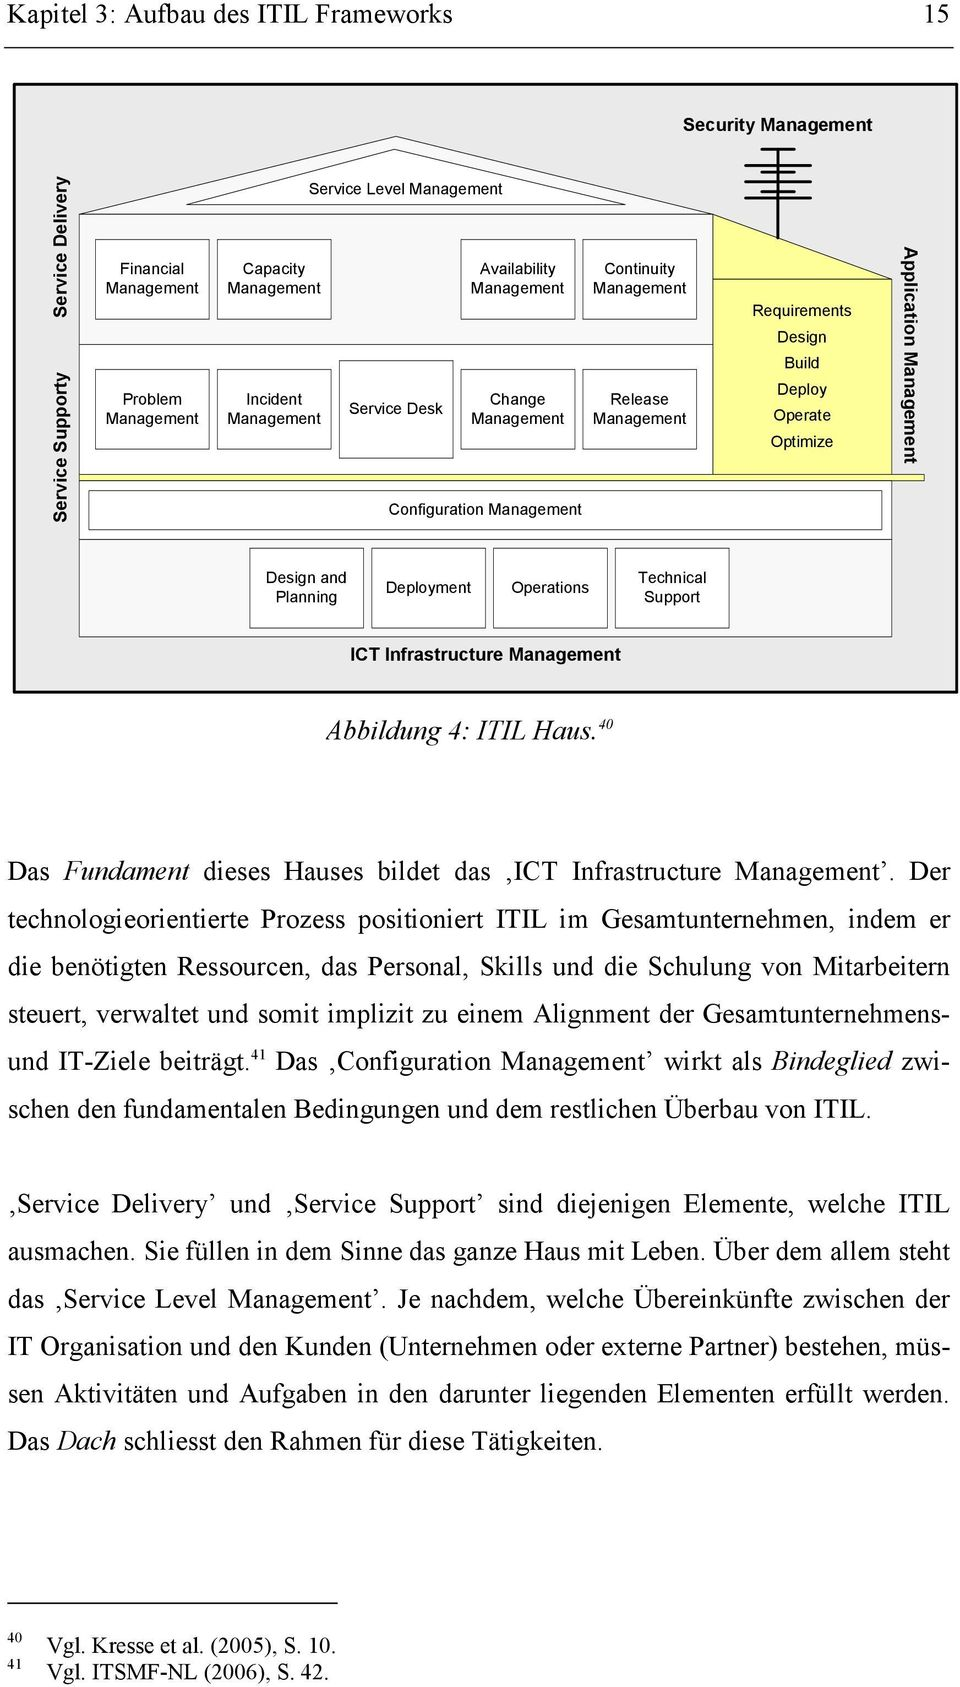 Design and Planning Deployment Operations Technical Support ICT Infrastructure Management Abbildung 4: ITIL Haus. 40 Das Fundament dieses Hauses bildet das ICT Infrastructure Management.